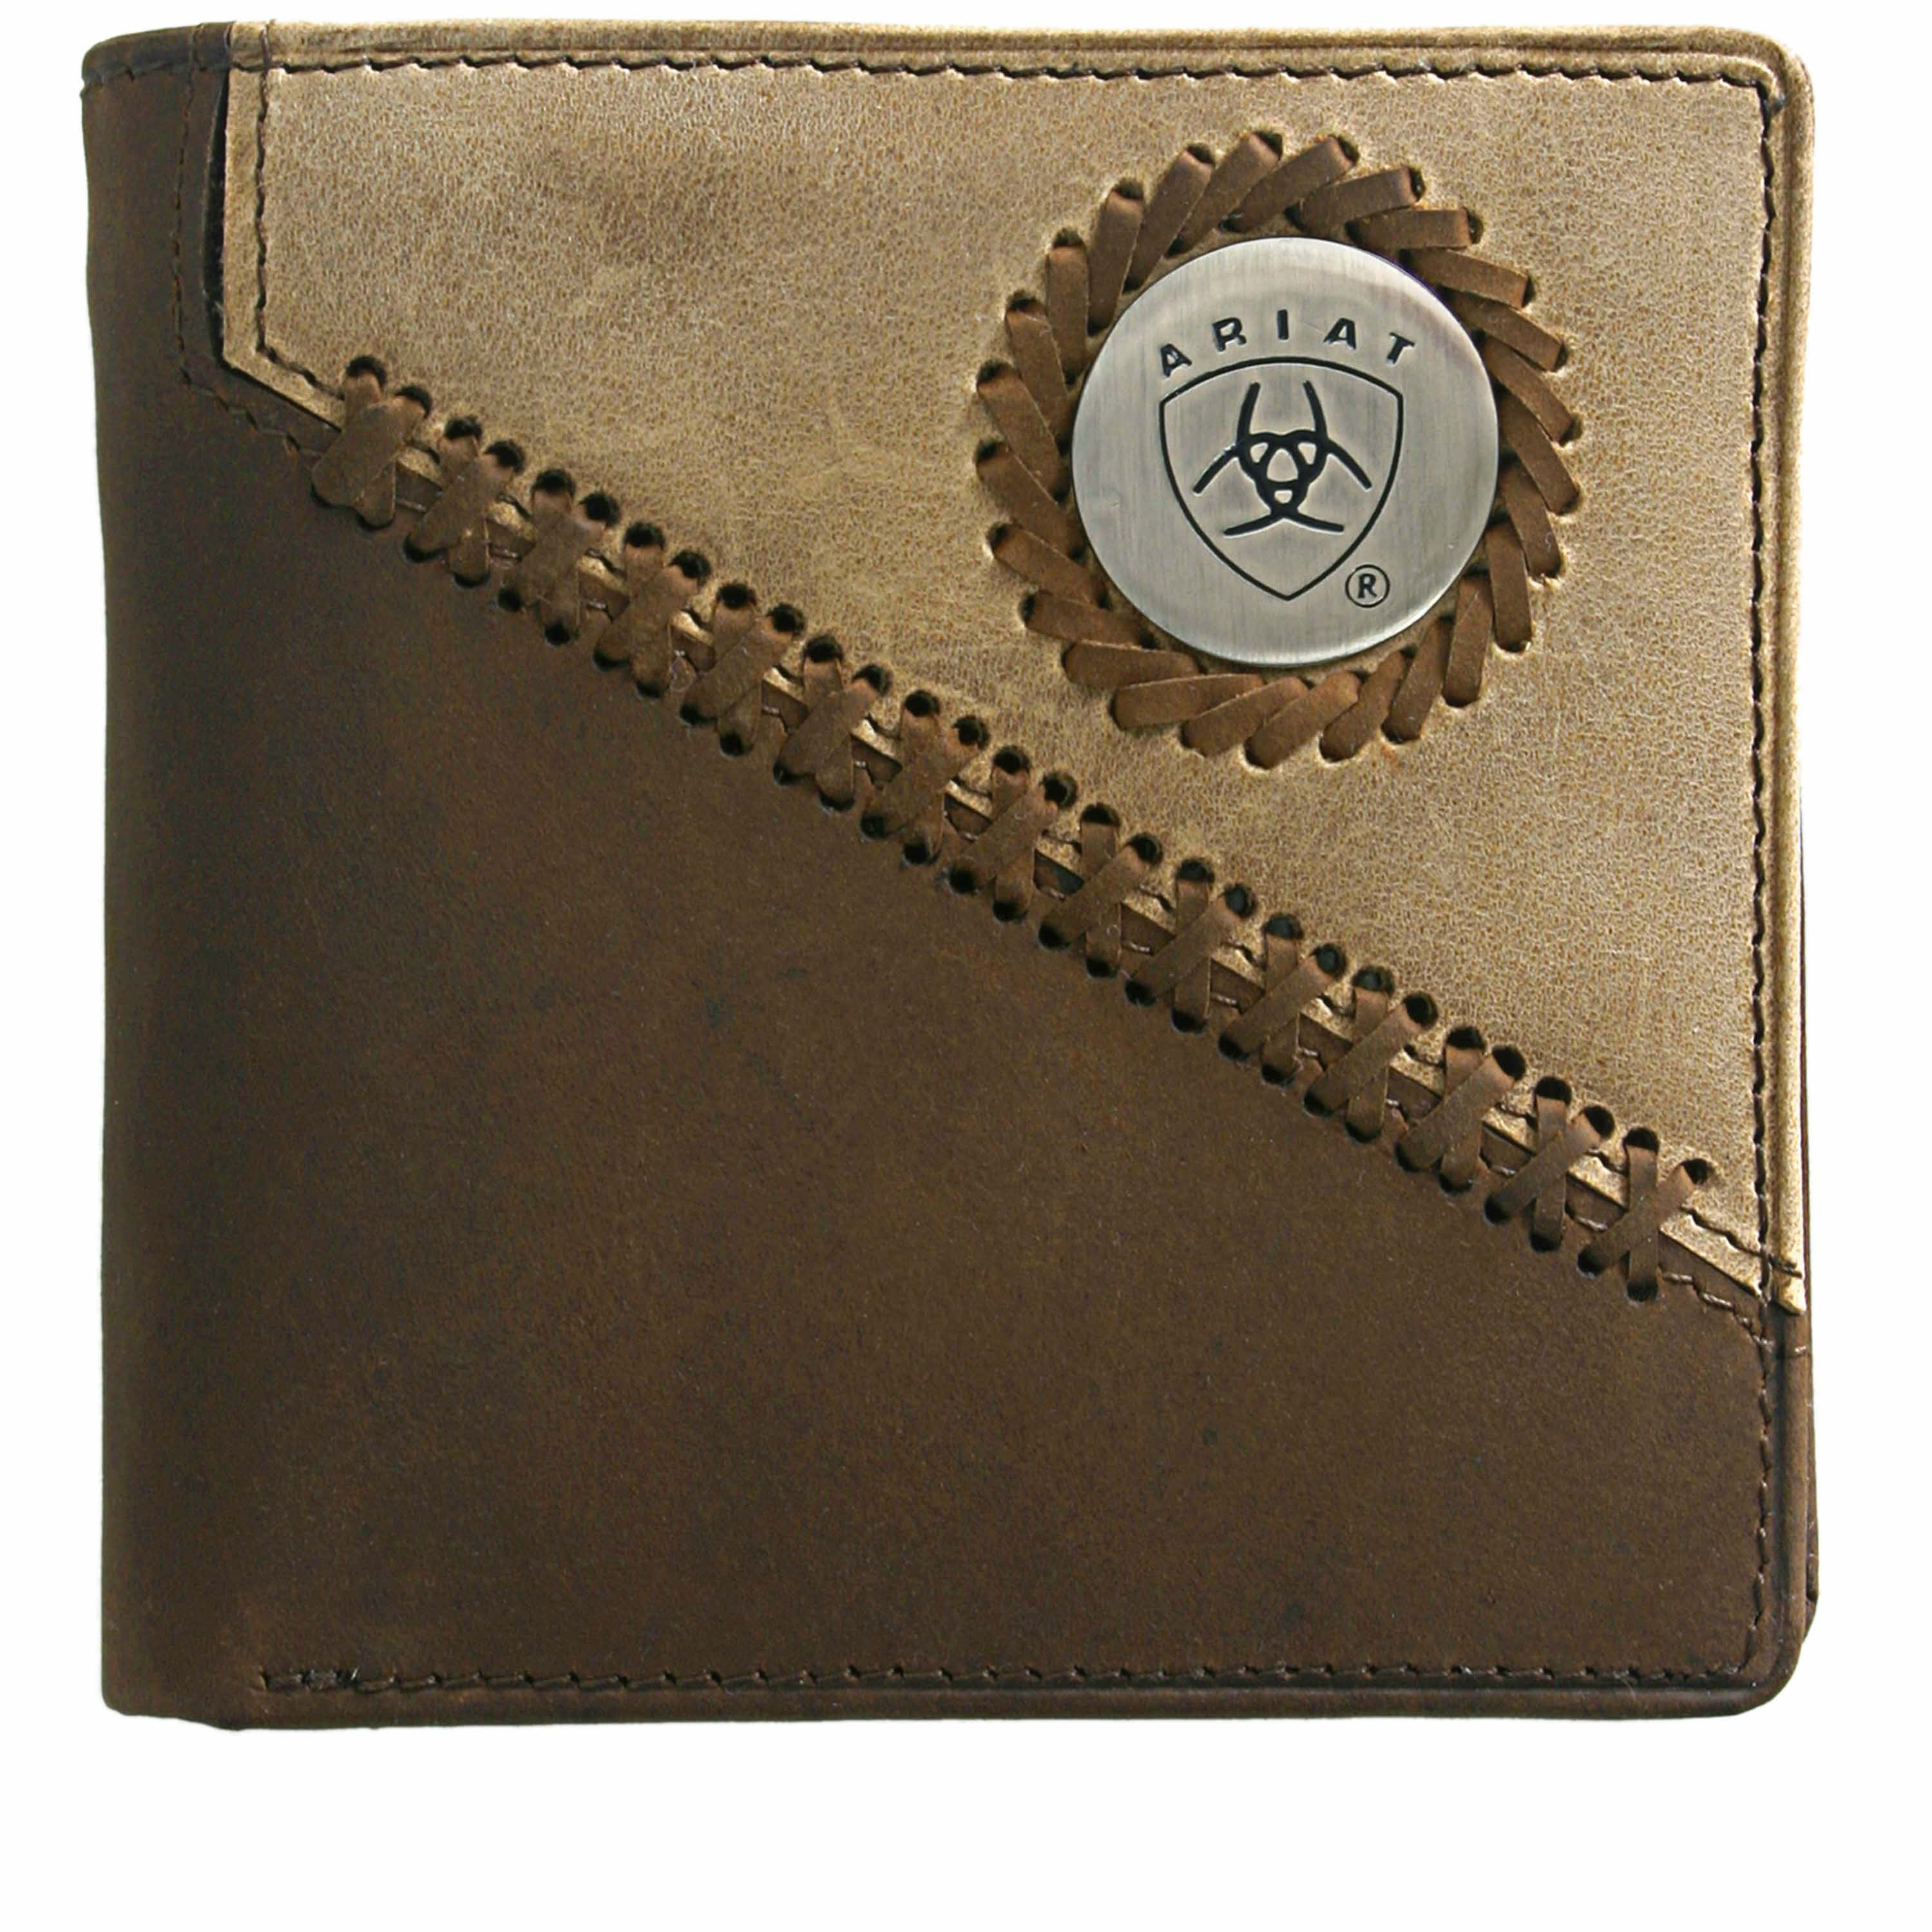 Mens Ariat & RM Williams Wallets